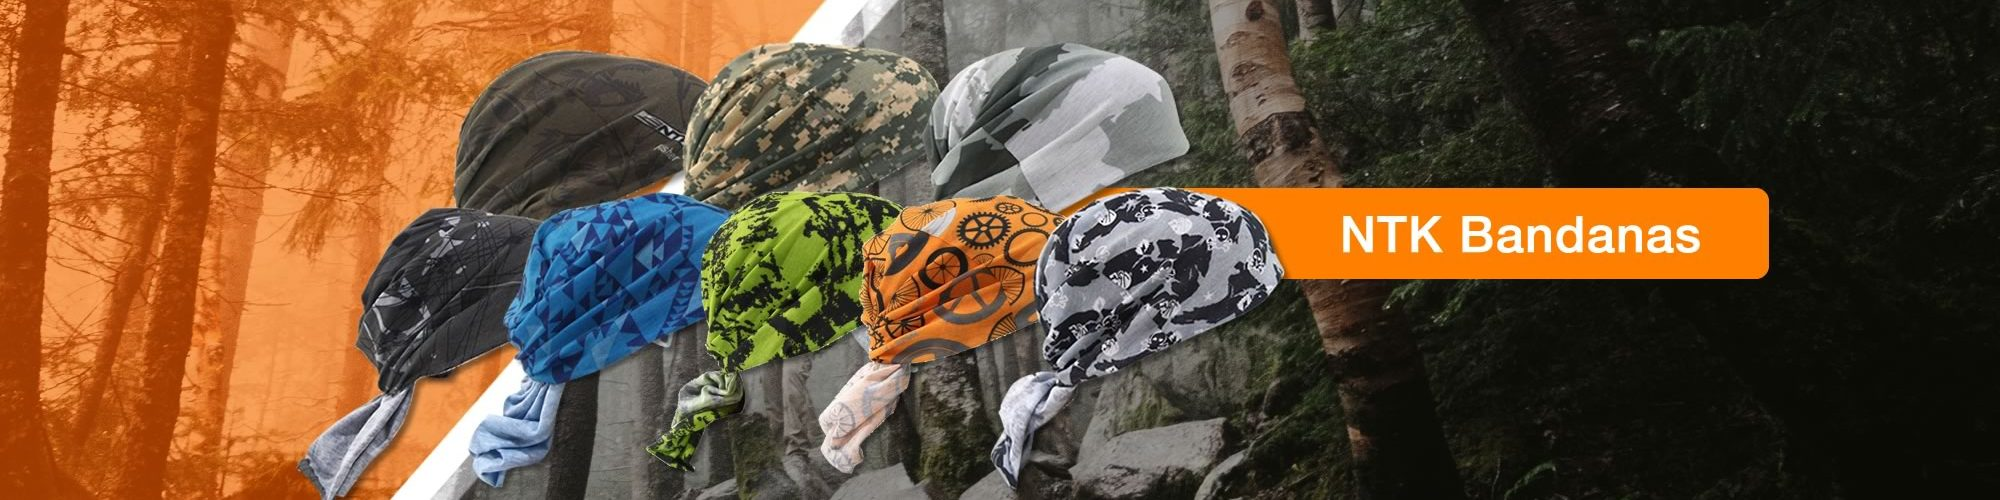 NTK Bandana Multifunctional Headwear